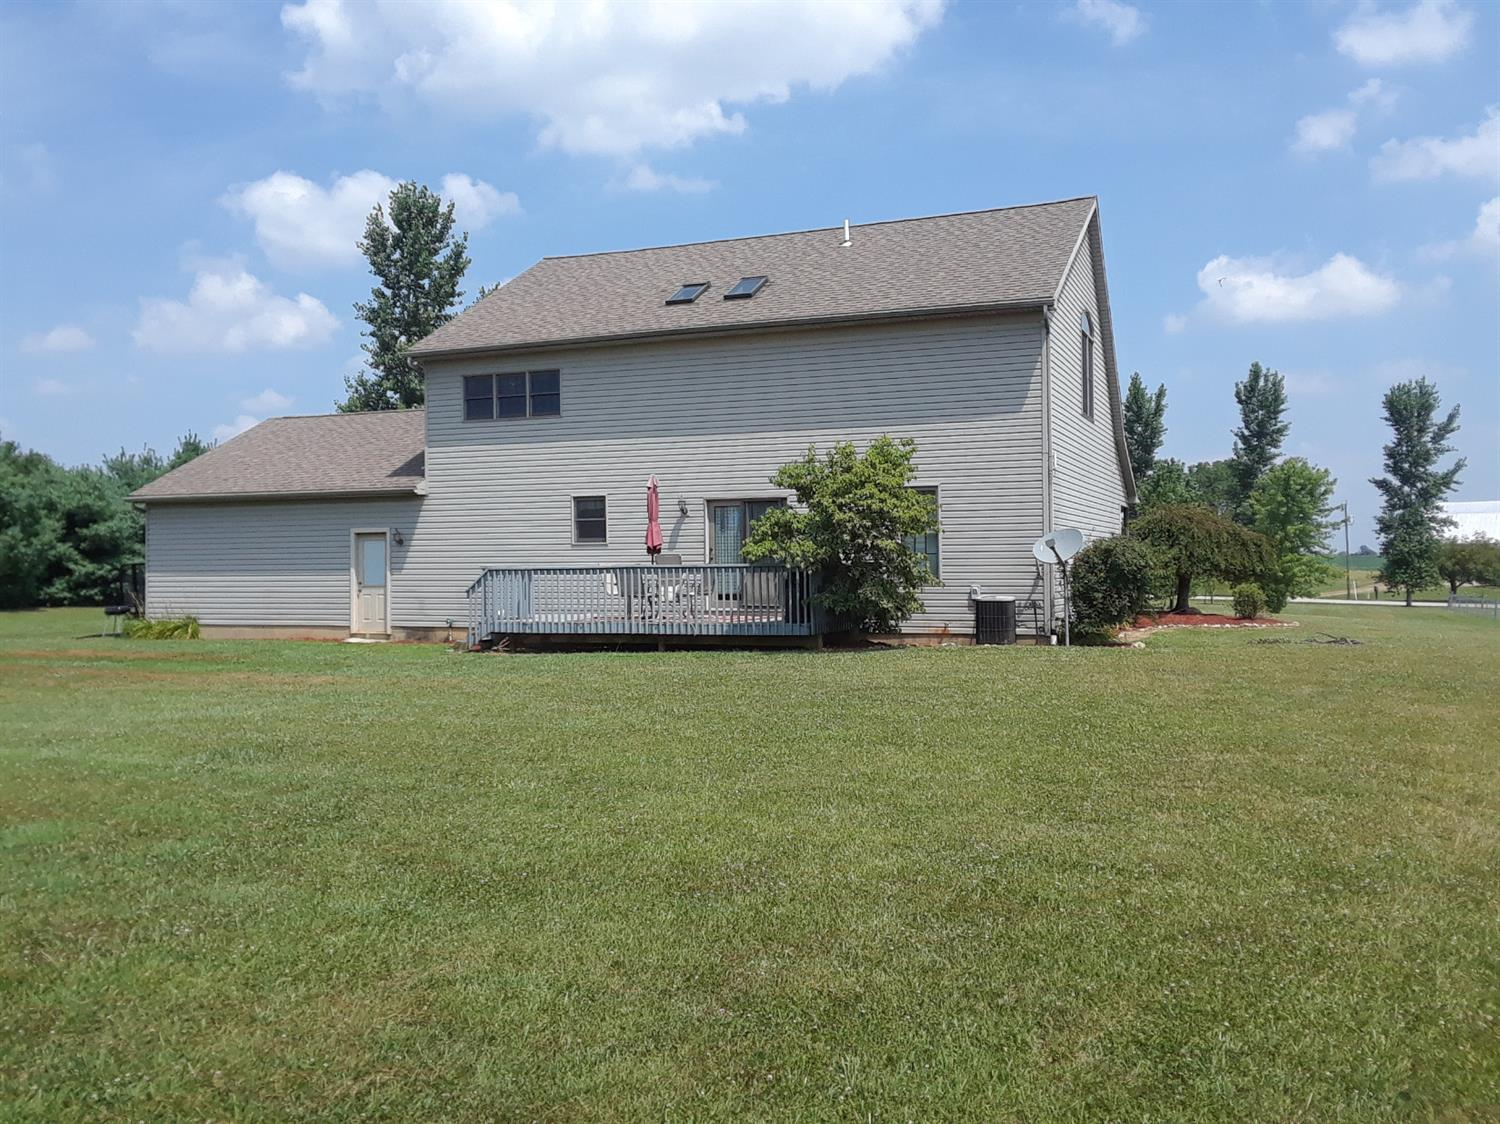 Photo 2 for 423 Greenfield Sabina Rd Fayette County , OH 43160